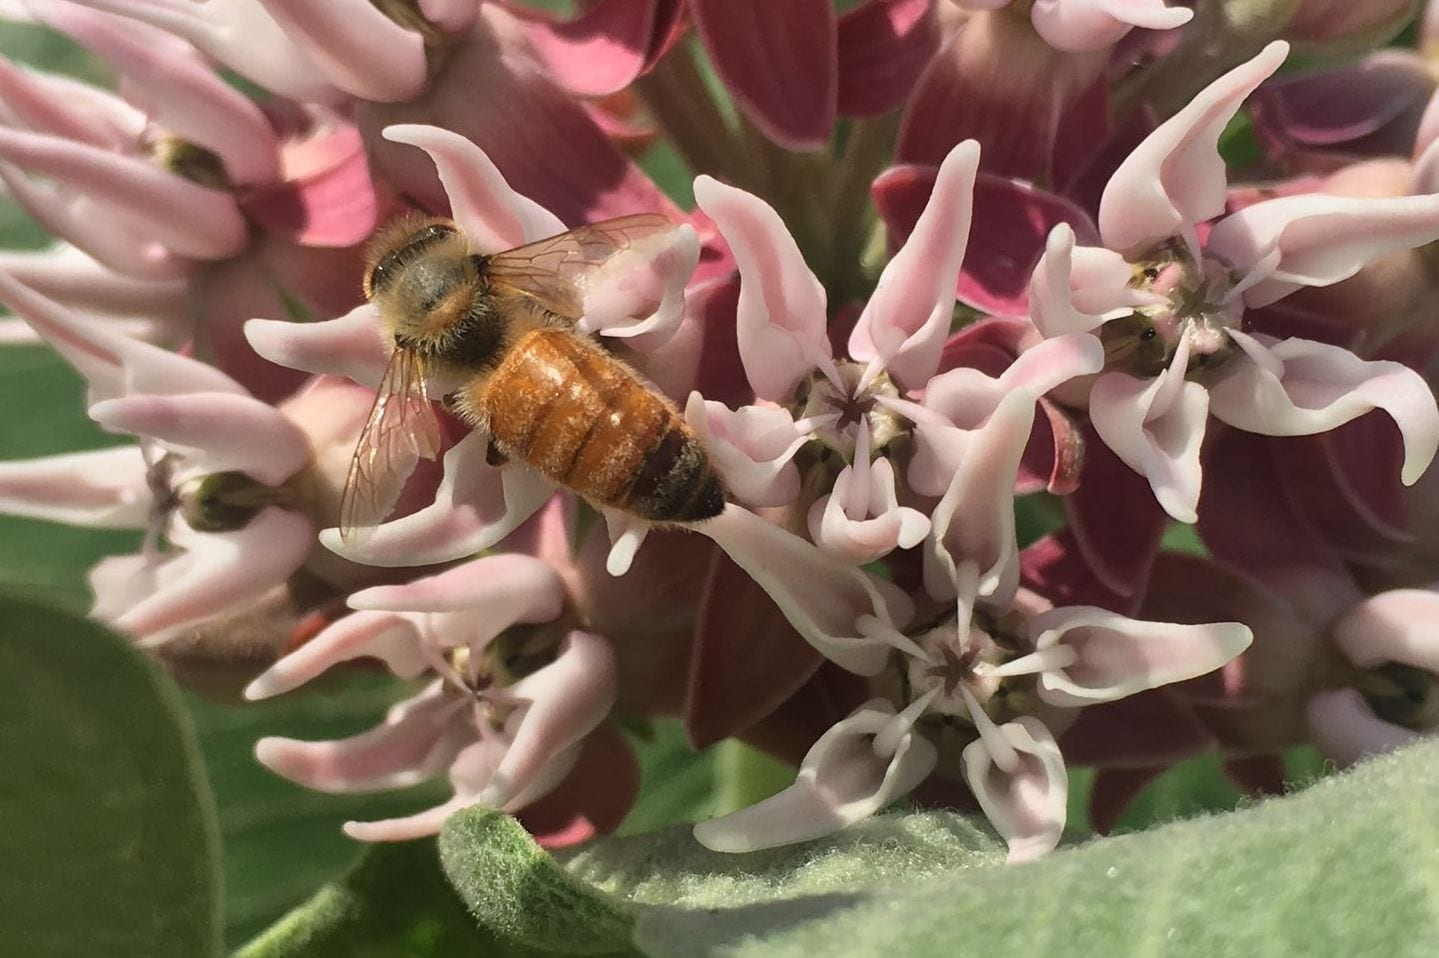 Pink milkweed-bee-1440pix wide-BM-July2019